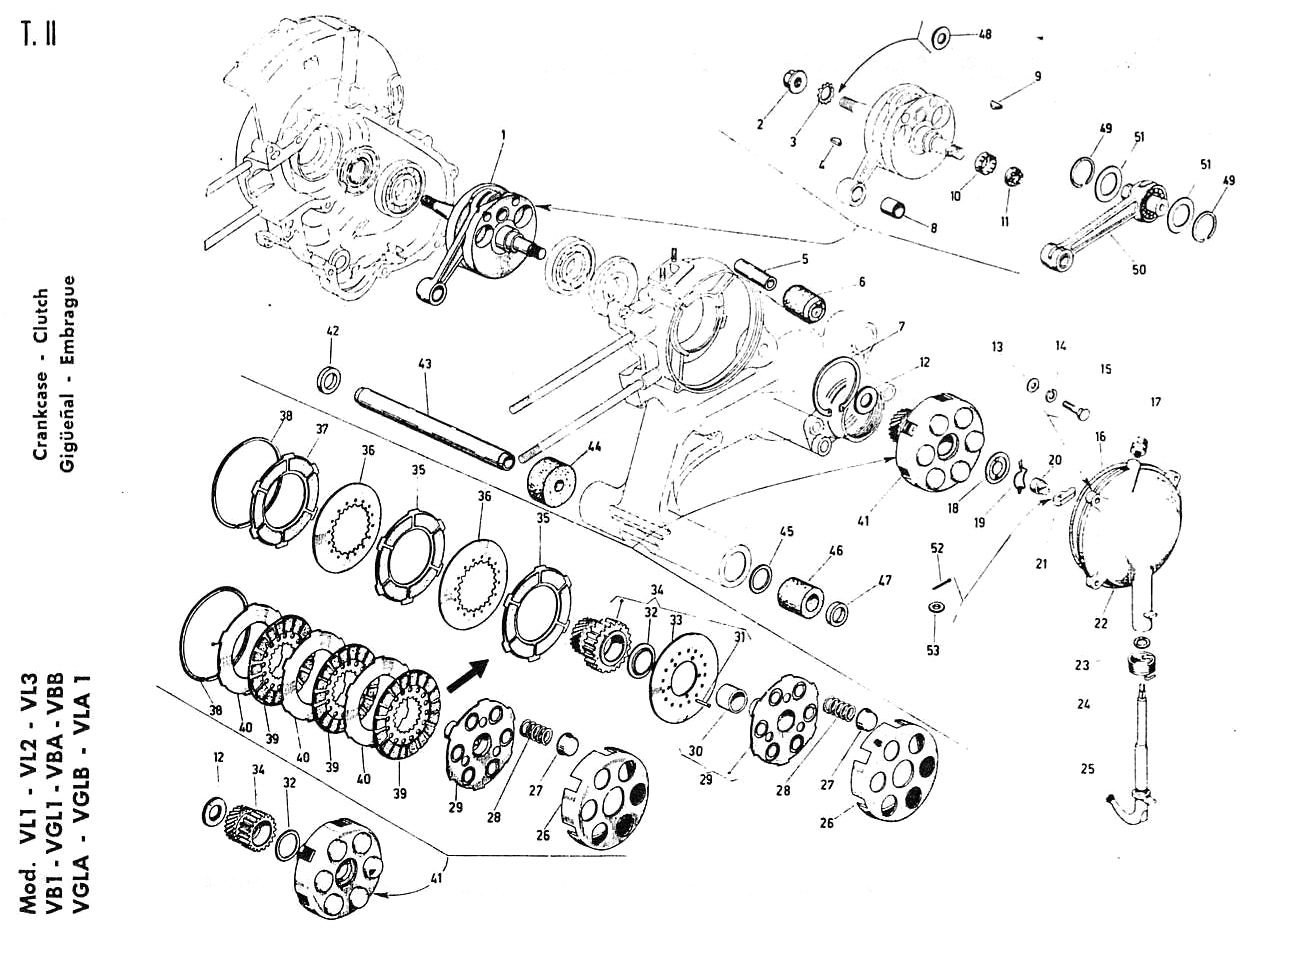 medium resolution of vespa parts diagram wiring diagram for you scooter battery wire diagram vespa engine diagram free wiring